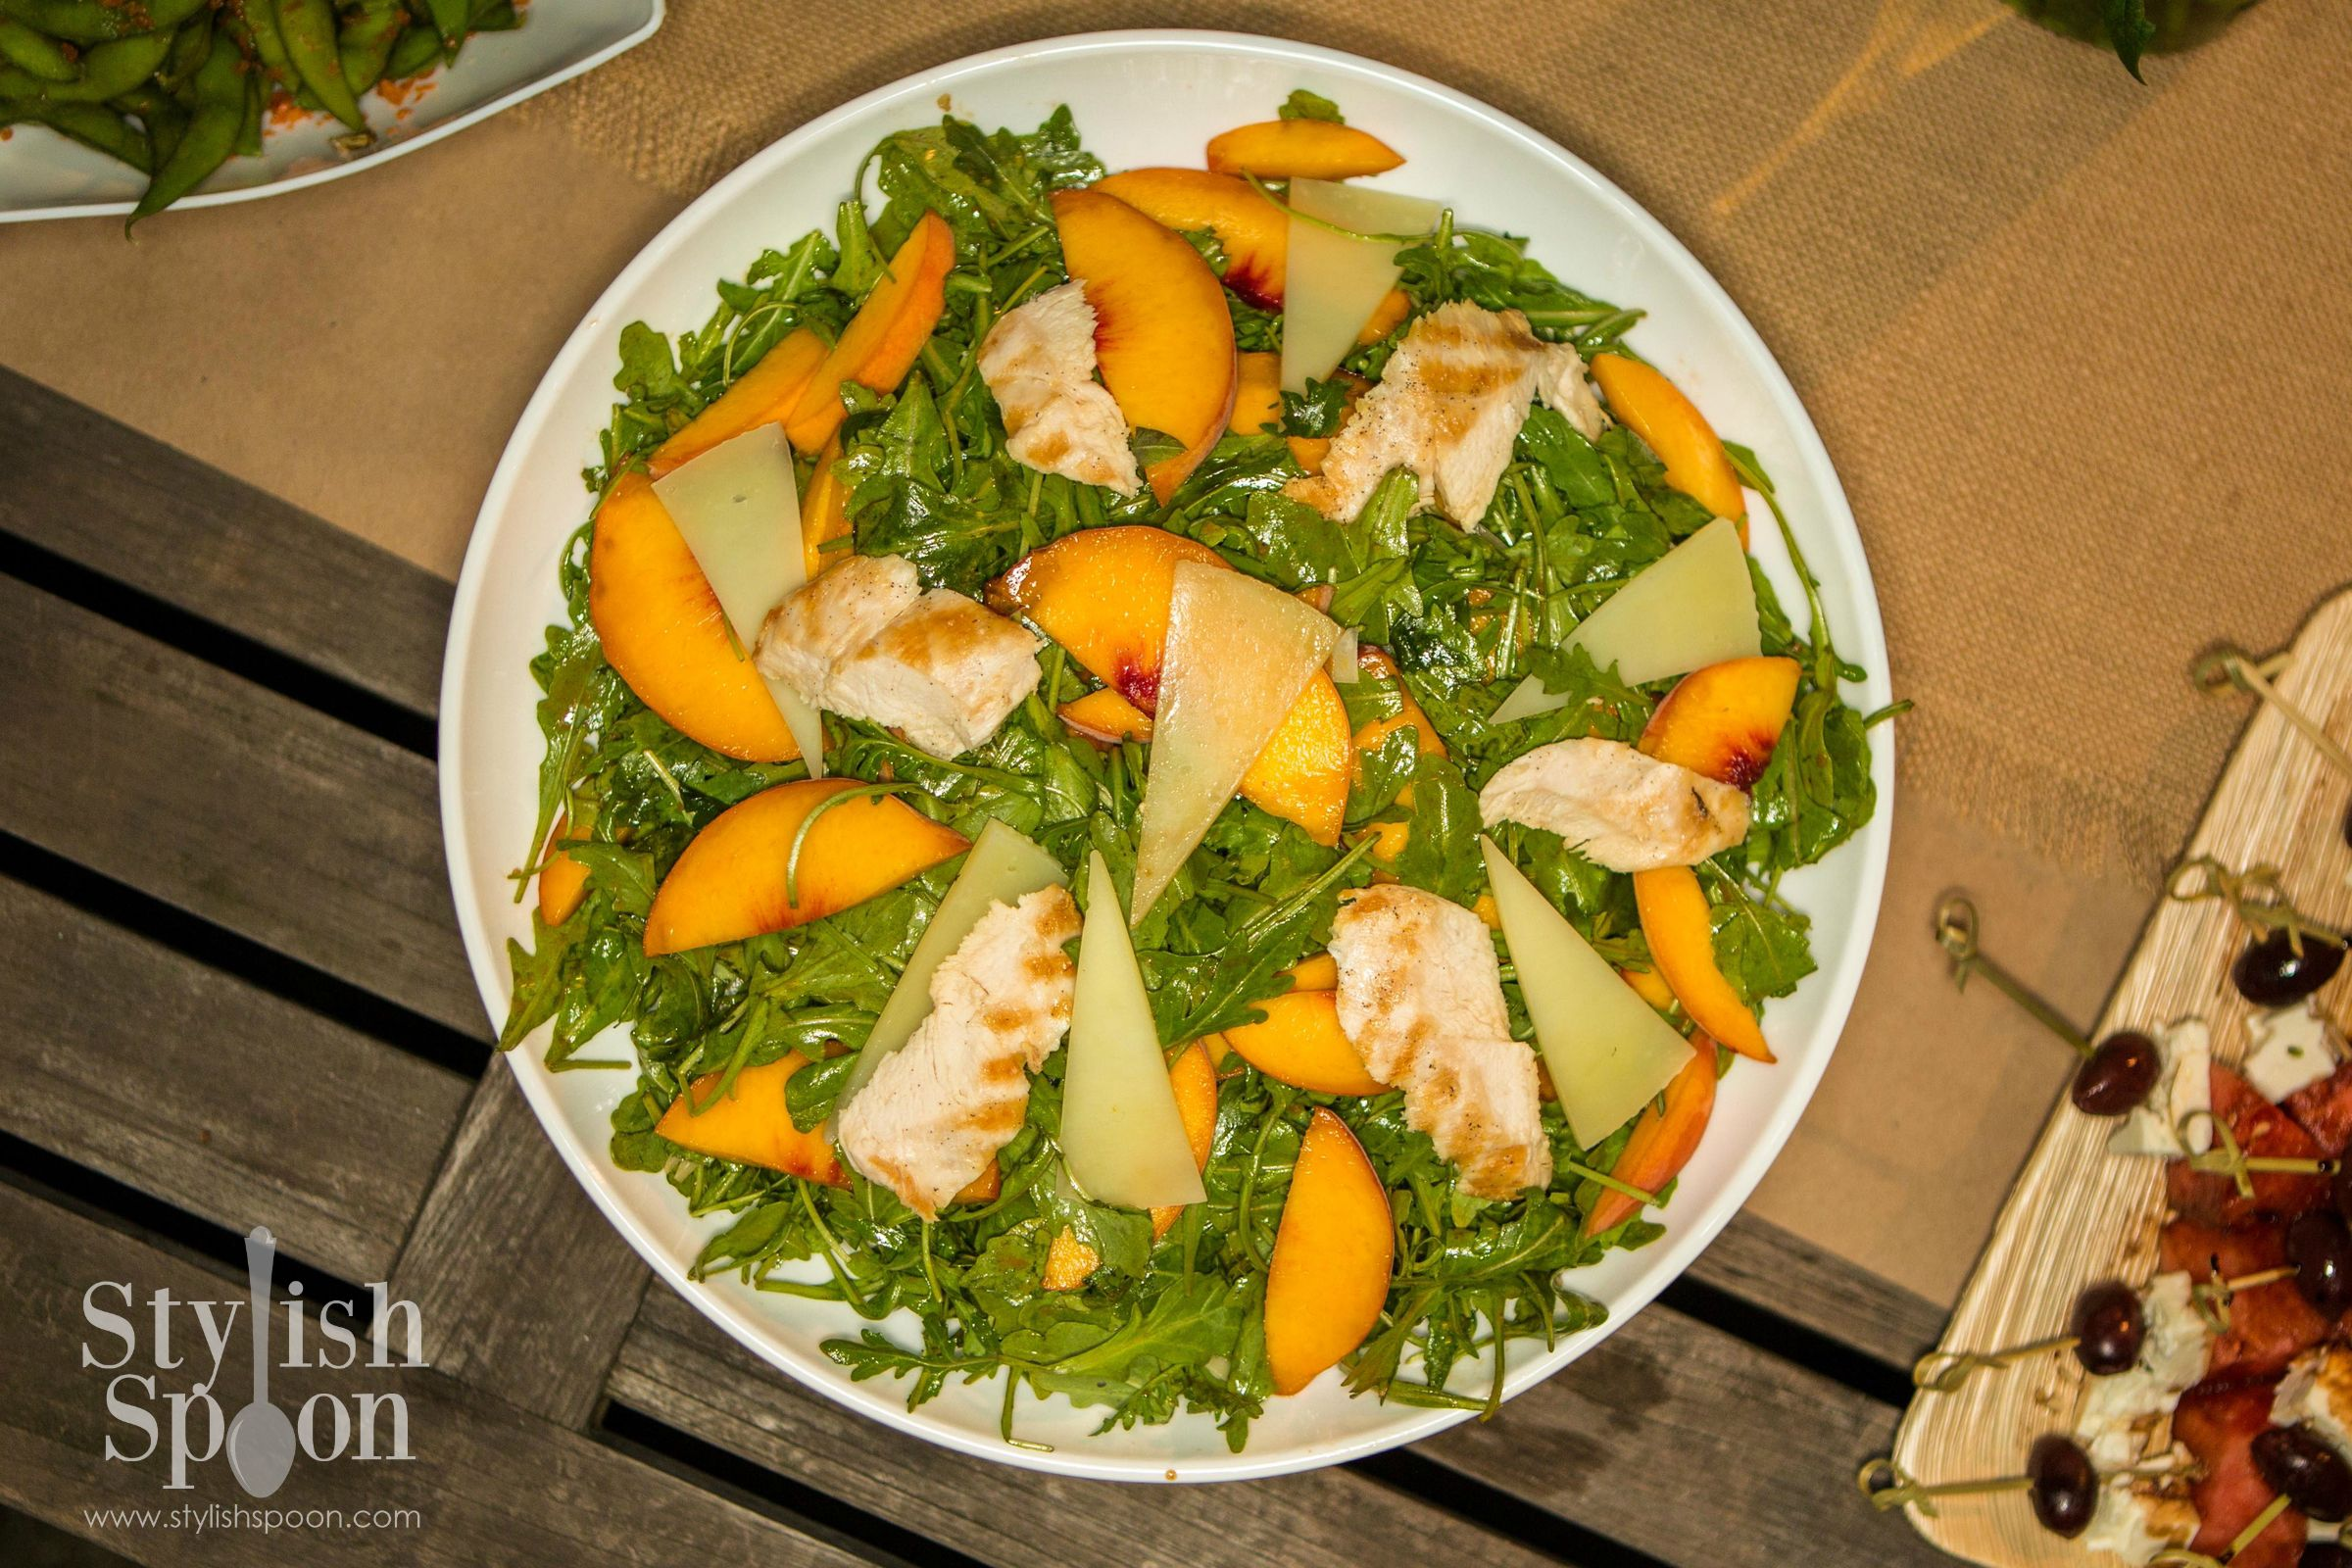 Arugula & Peach Salad with Grilled Chicken & Balsamic Vinaigrette